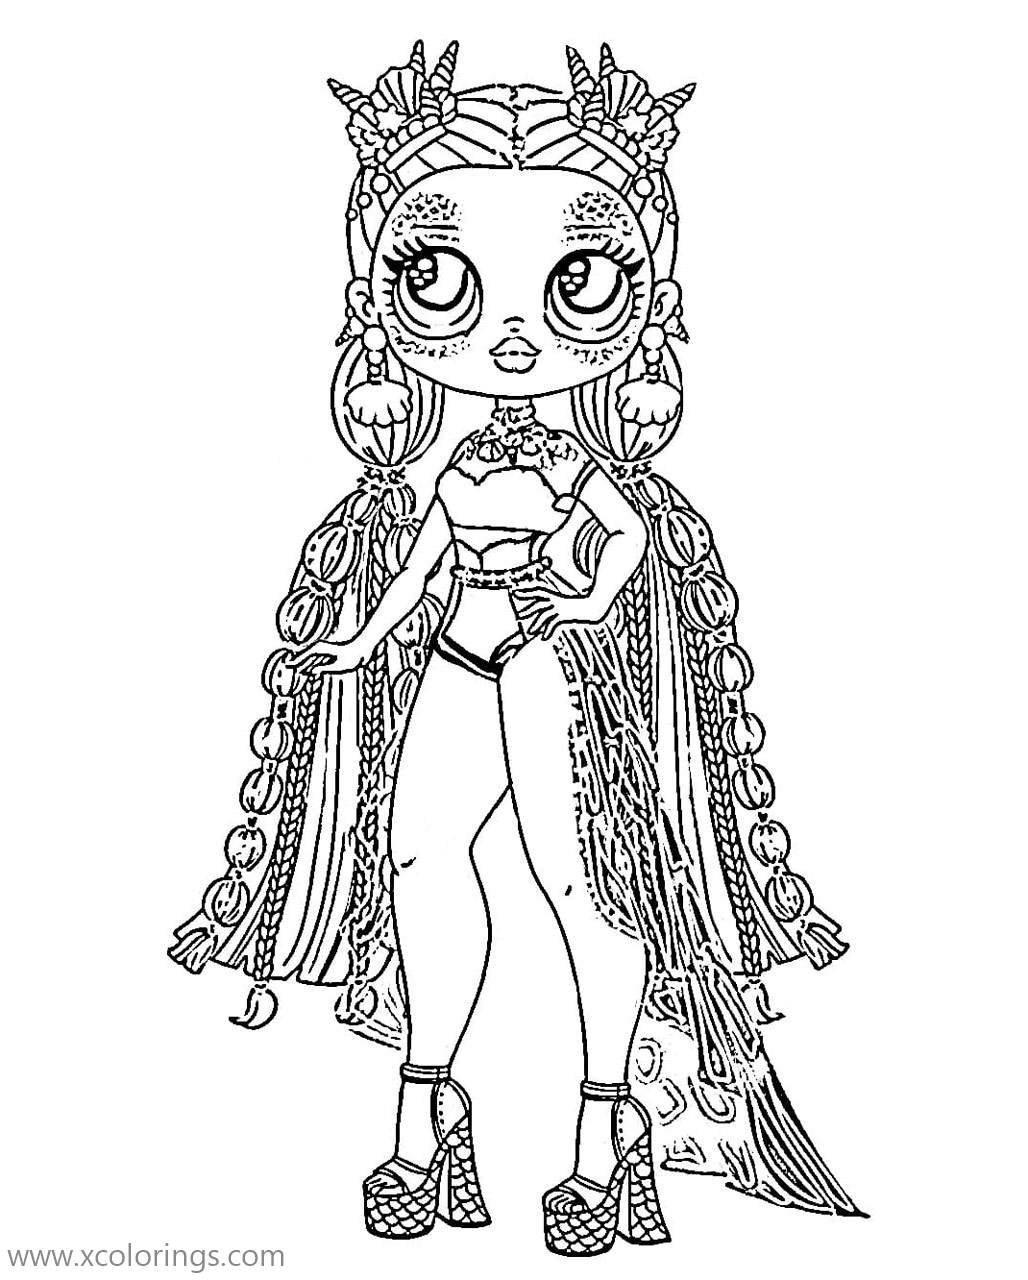 Sea Princess From Lol Omg Doll Coloring Pages Xcolorings Com